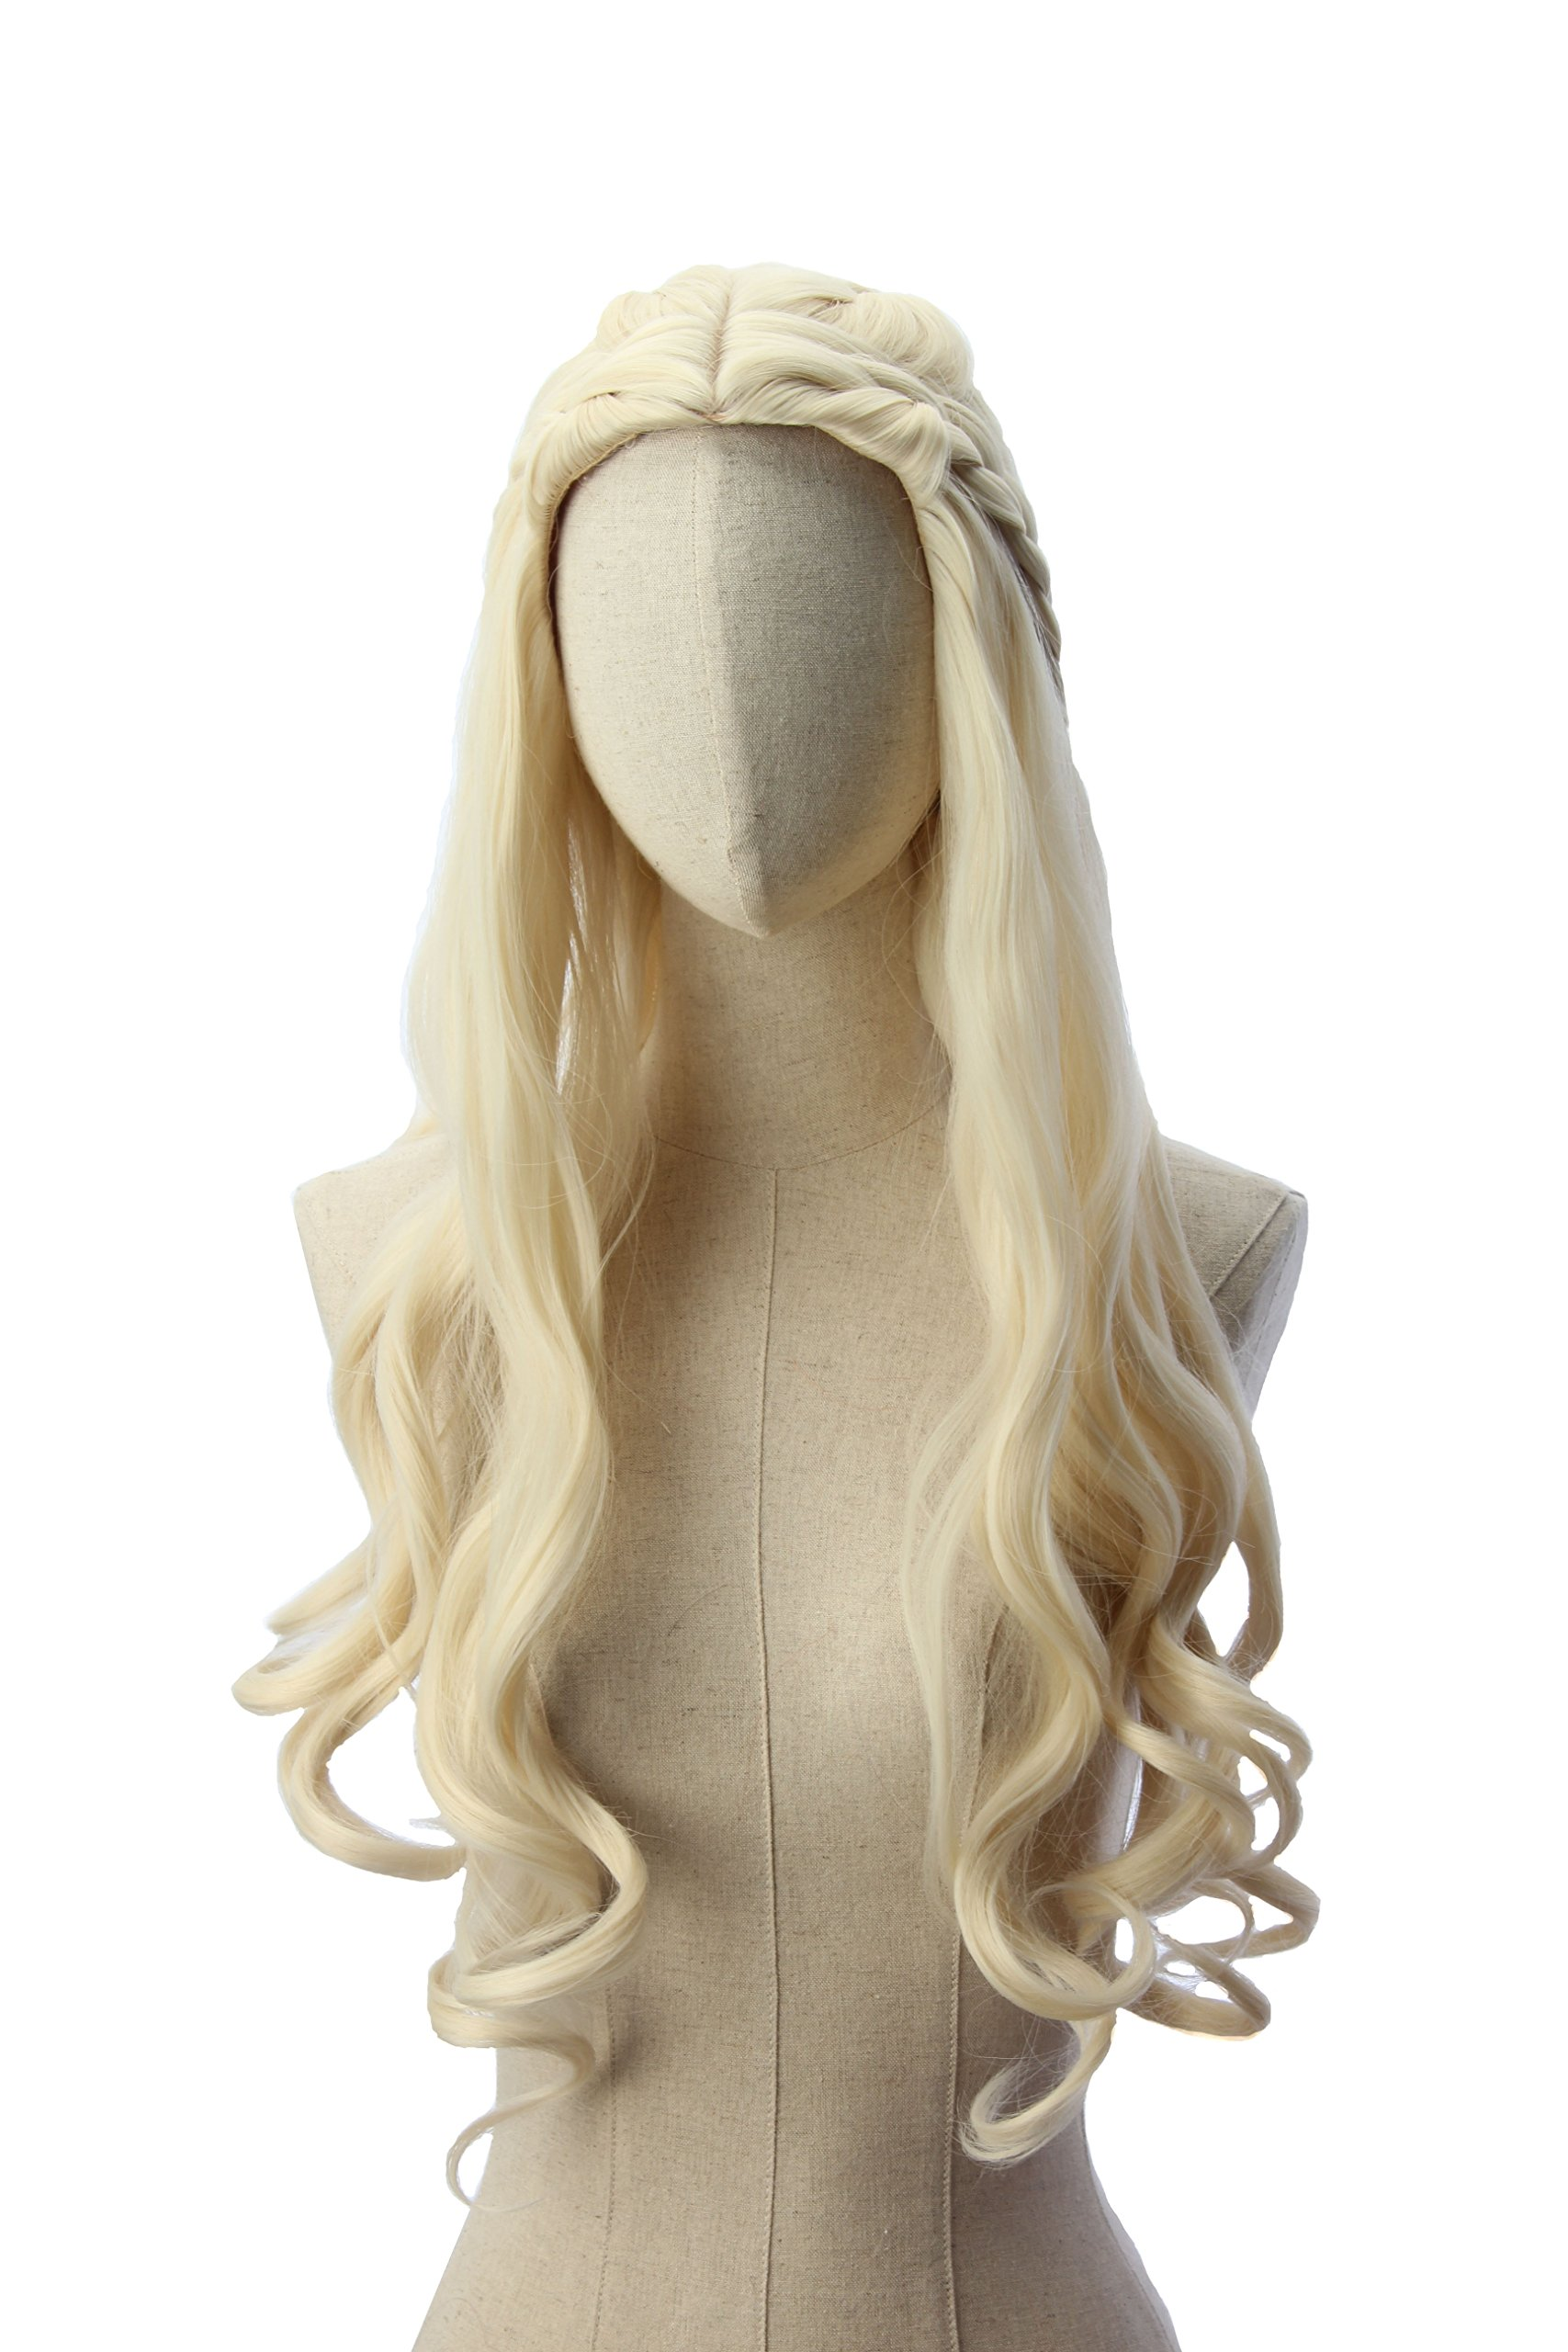 Light wavy blonde Khaleesi Daenerys Targaryen Wig Inspired by Game of Thrones Costume Cosplay Synthetic Hair by CosplayWigsCom